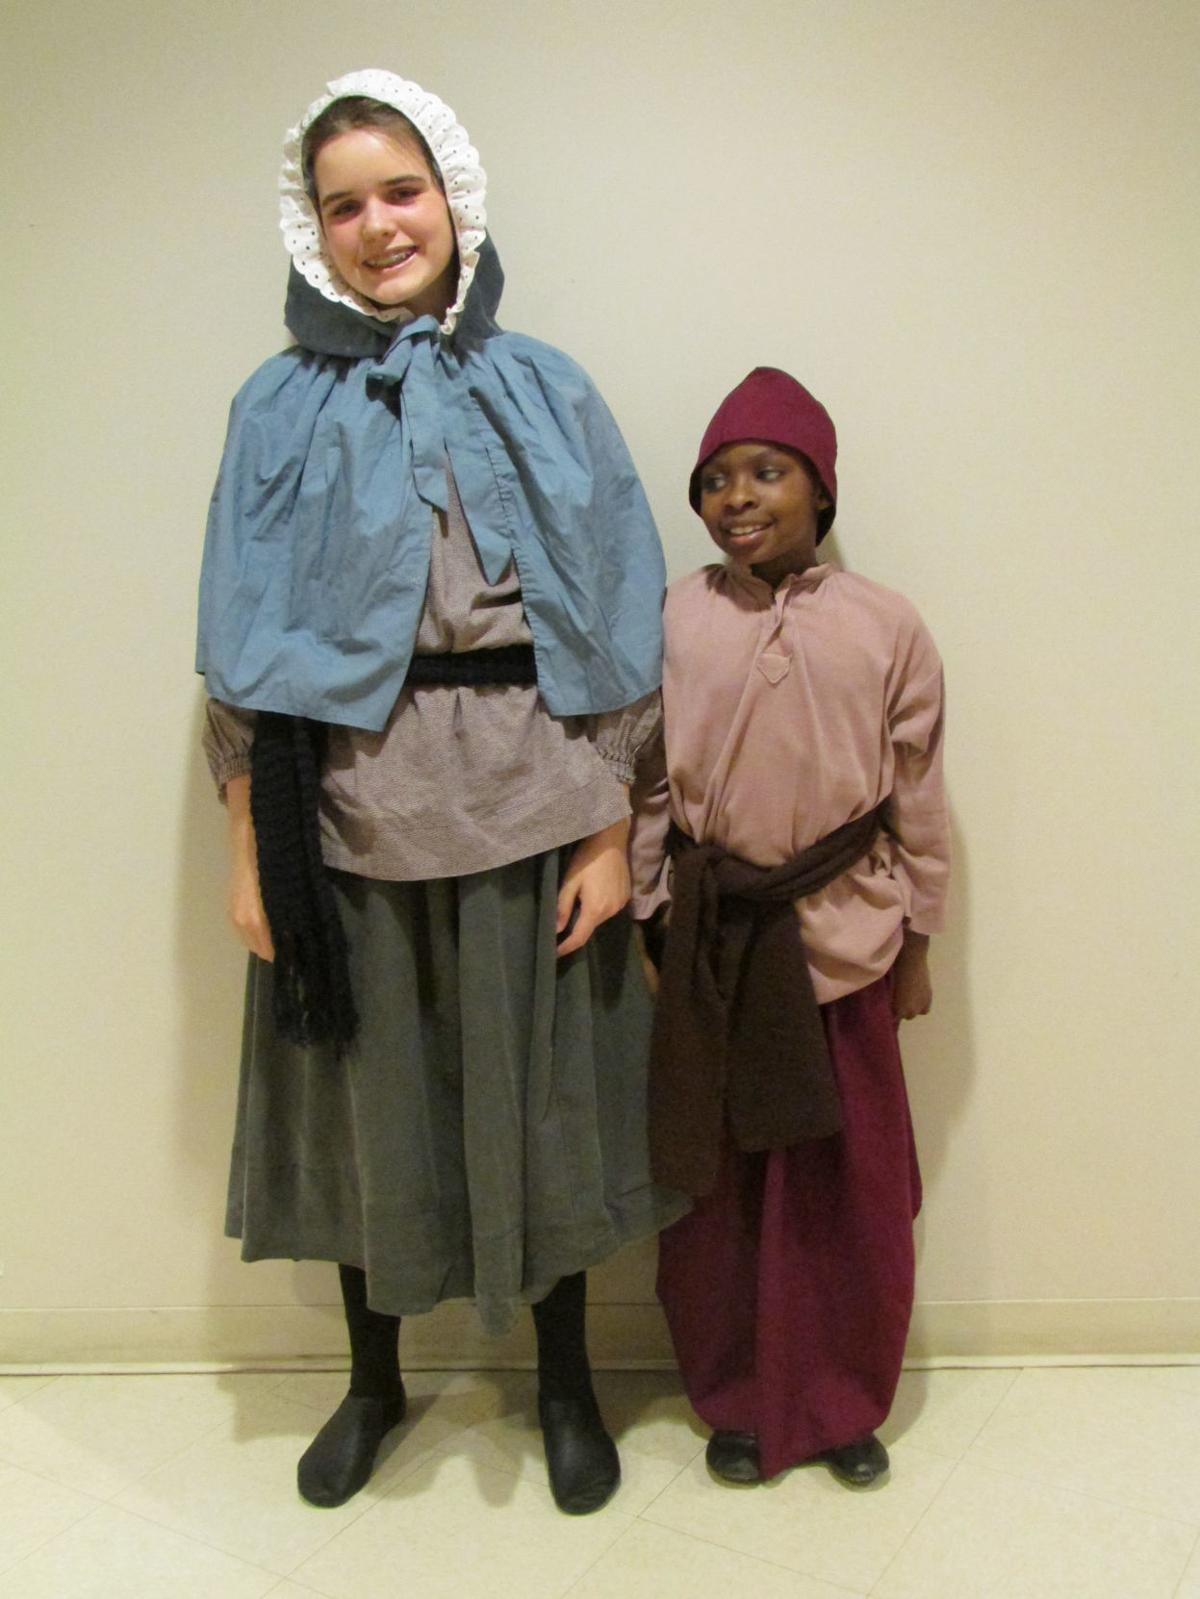 'The Prince & the Pauper' featured at Family Fun Night